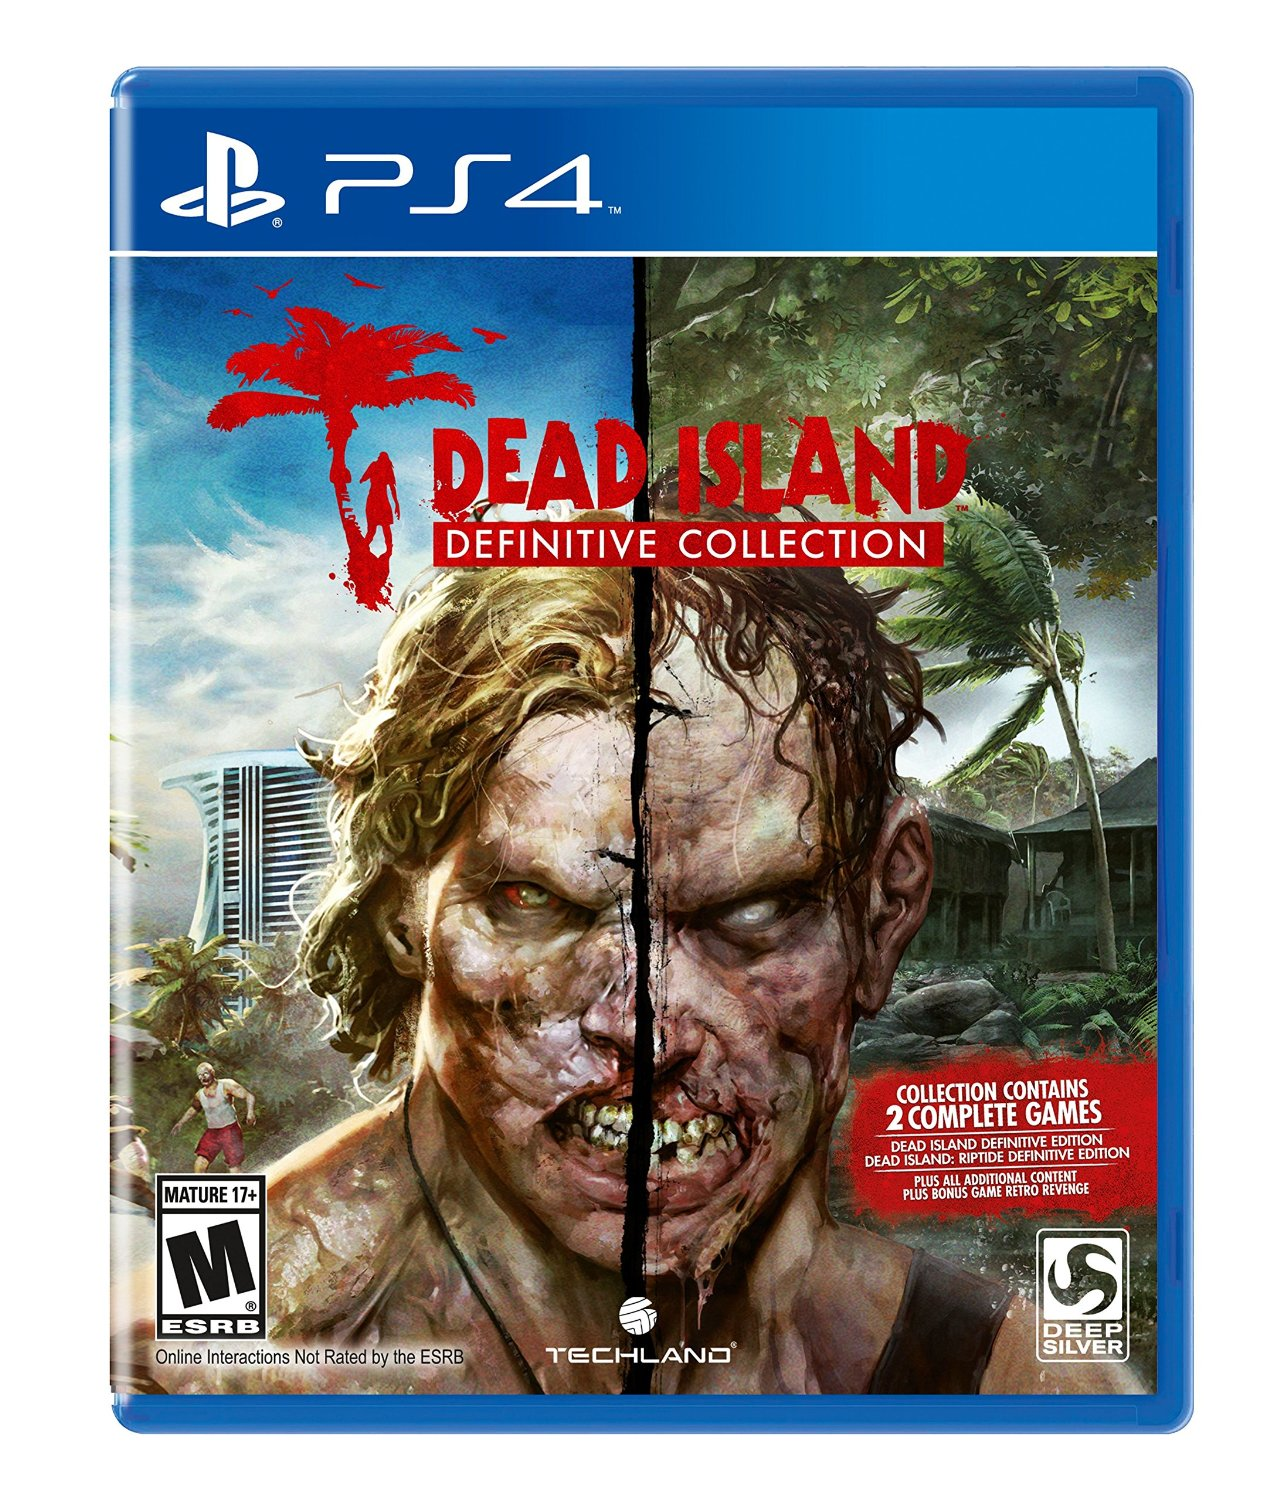 PS4 Dead Island Definitive Collection (PlayStation 4)